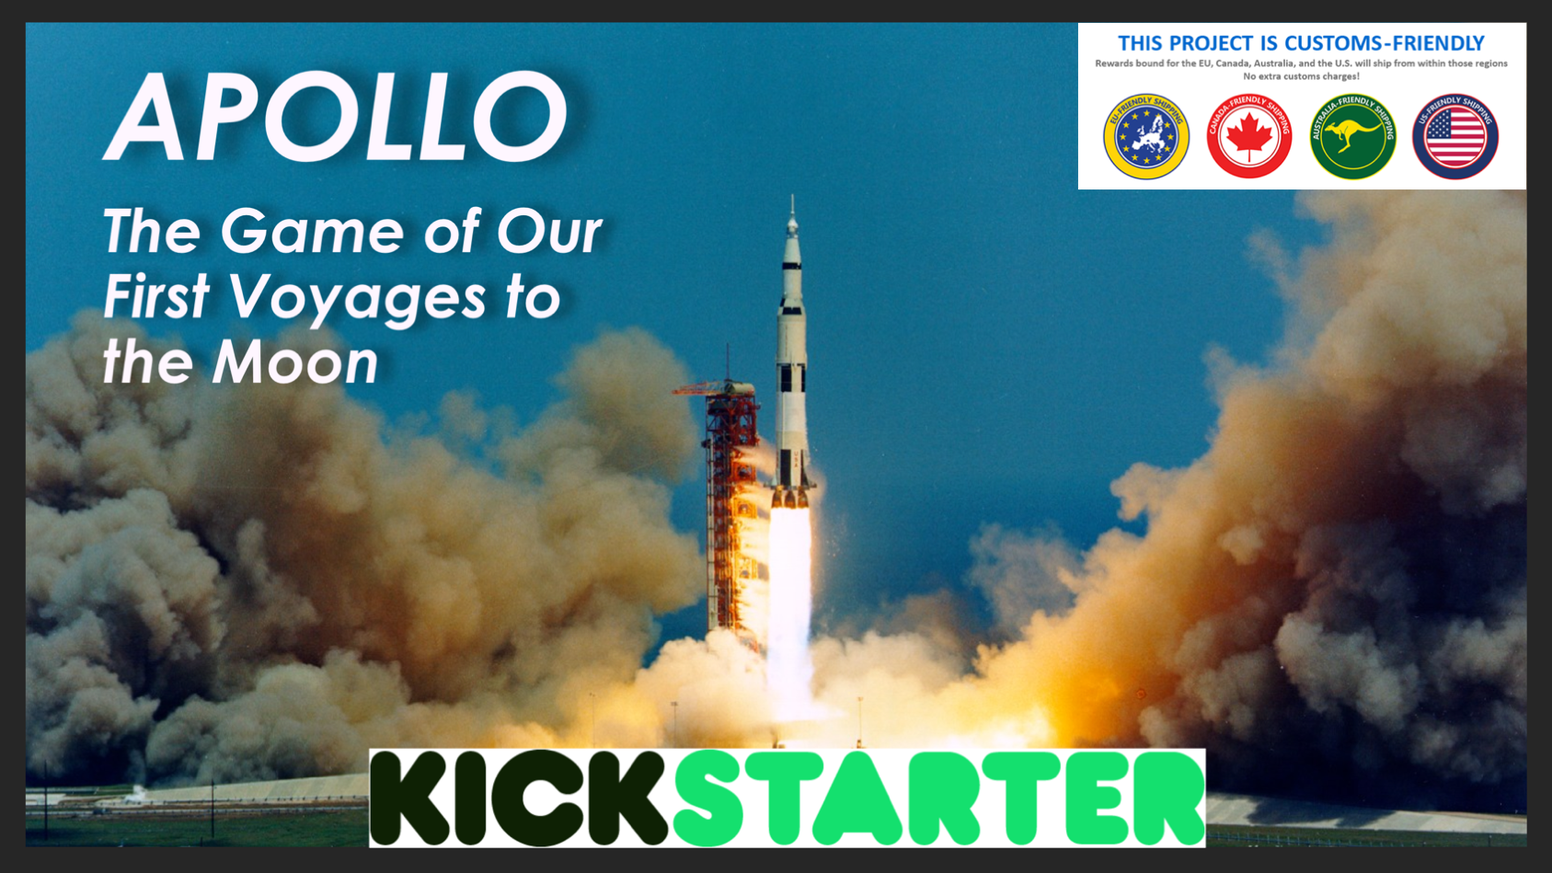 Apollo: The Game of Our First Voyages to the Moon by Exoplanet Games